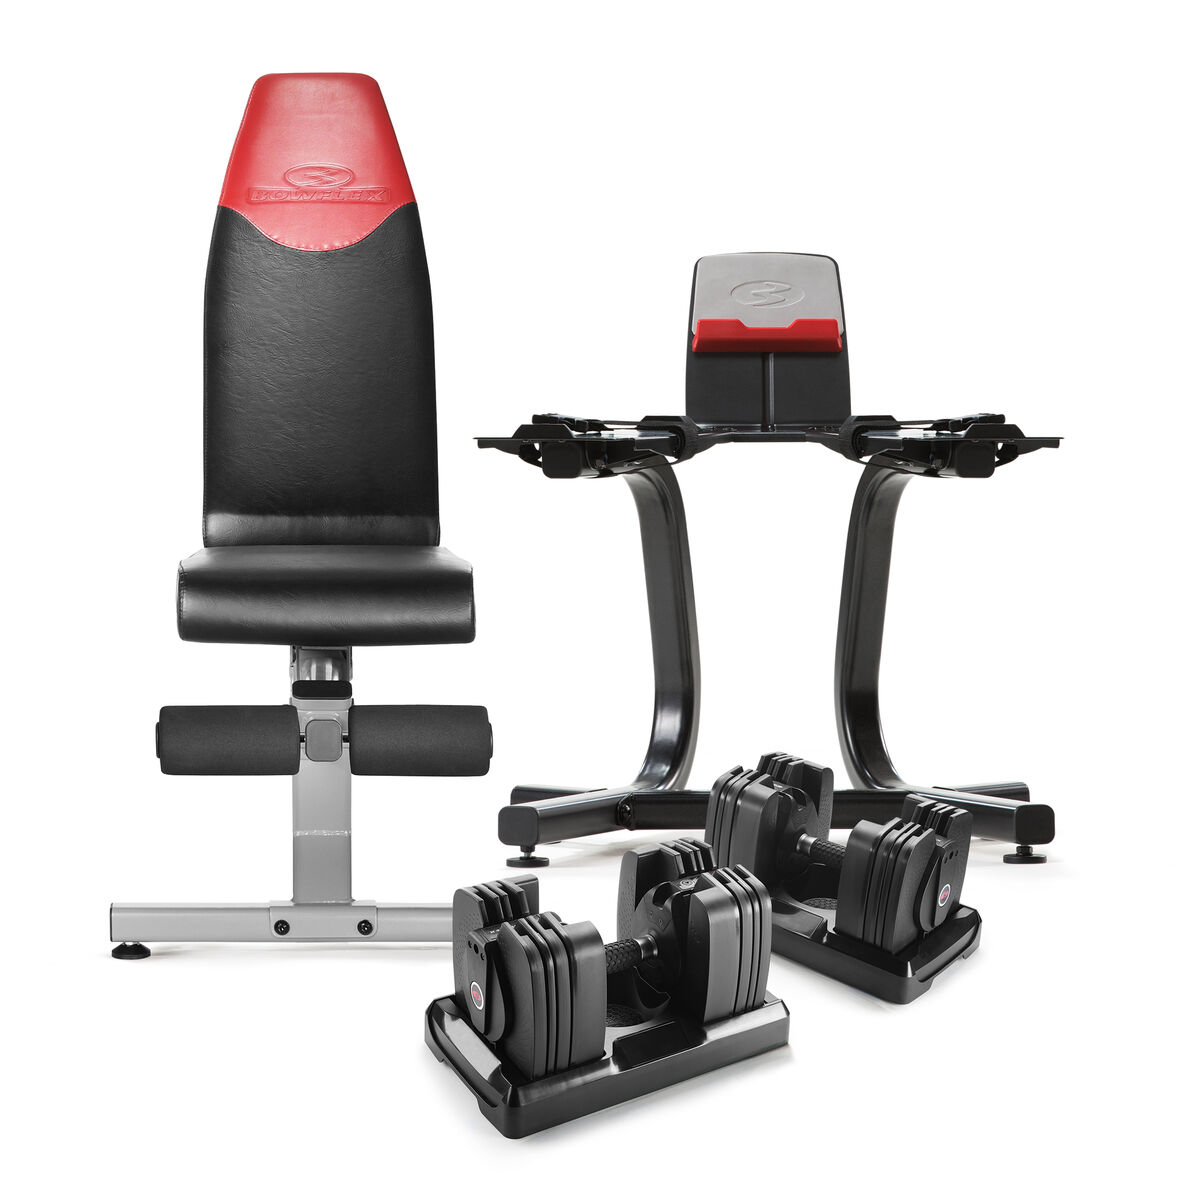 Bowflex SelectTech 560, Bench, and Stand Bundle